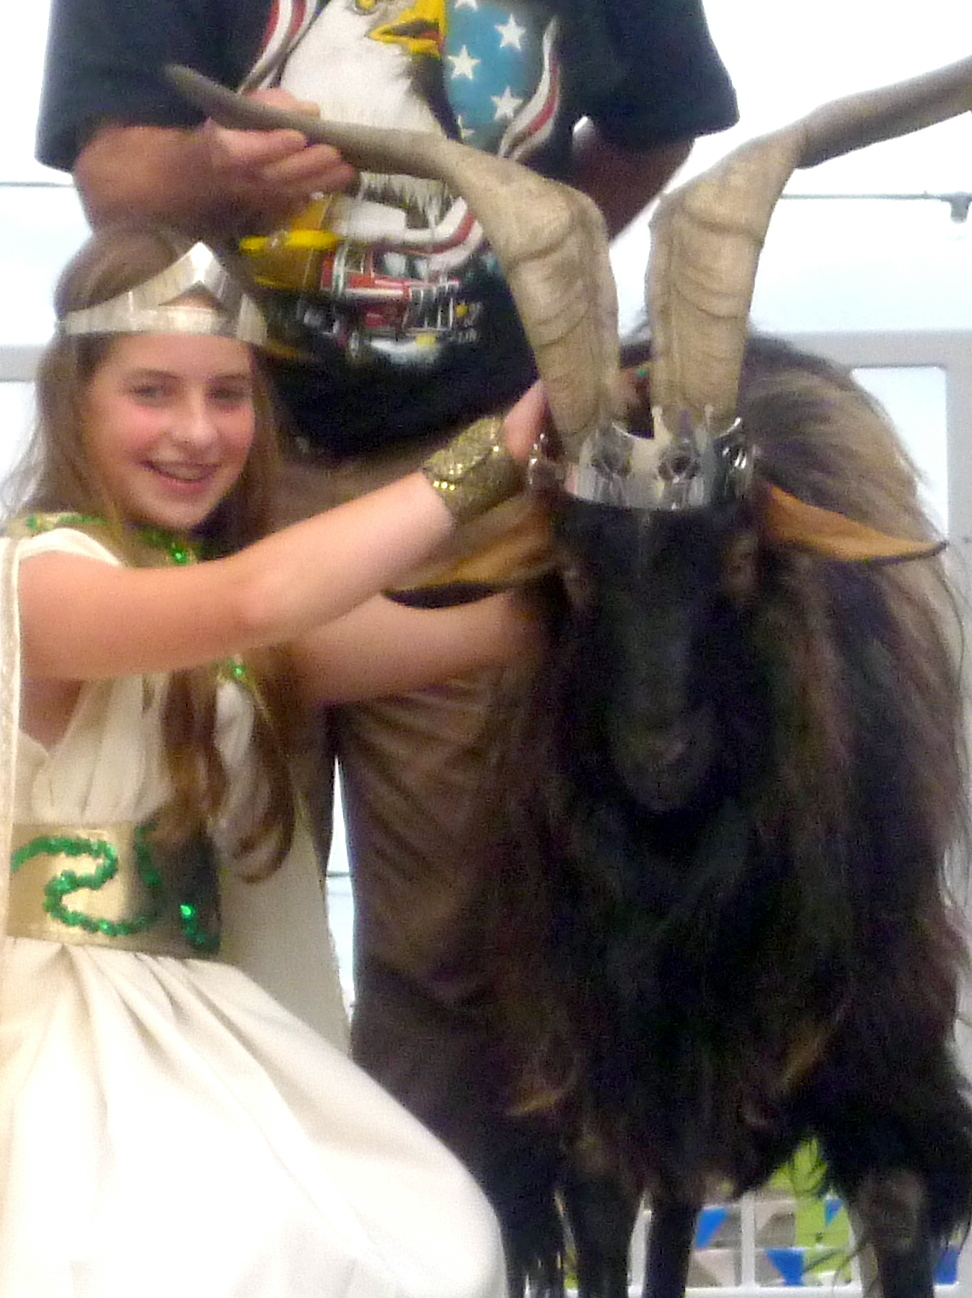 The queen crowns King Puck